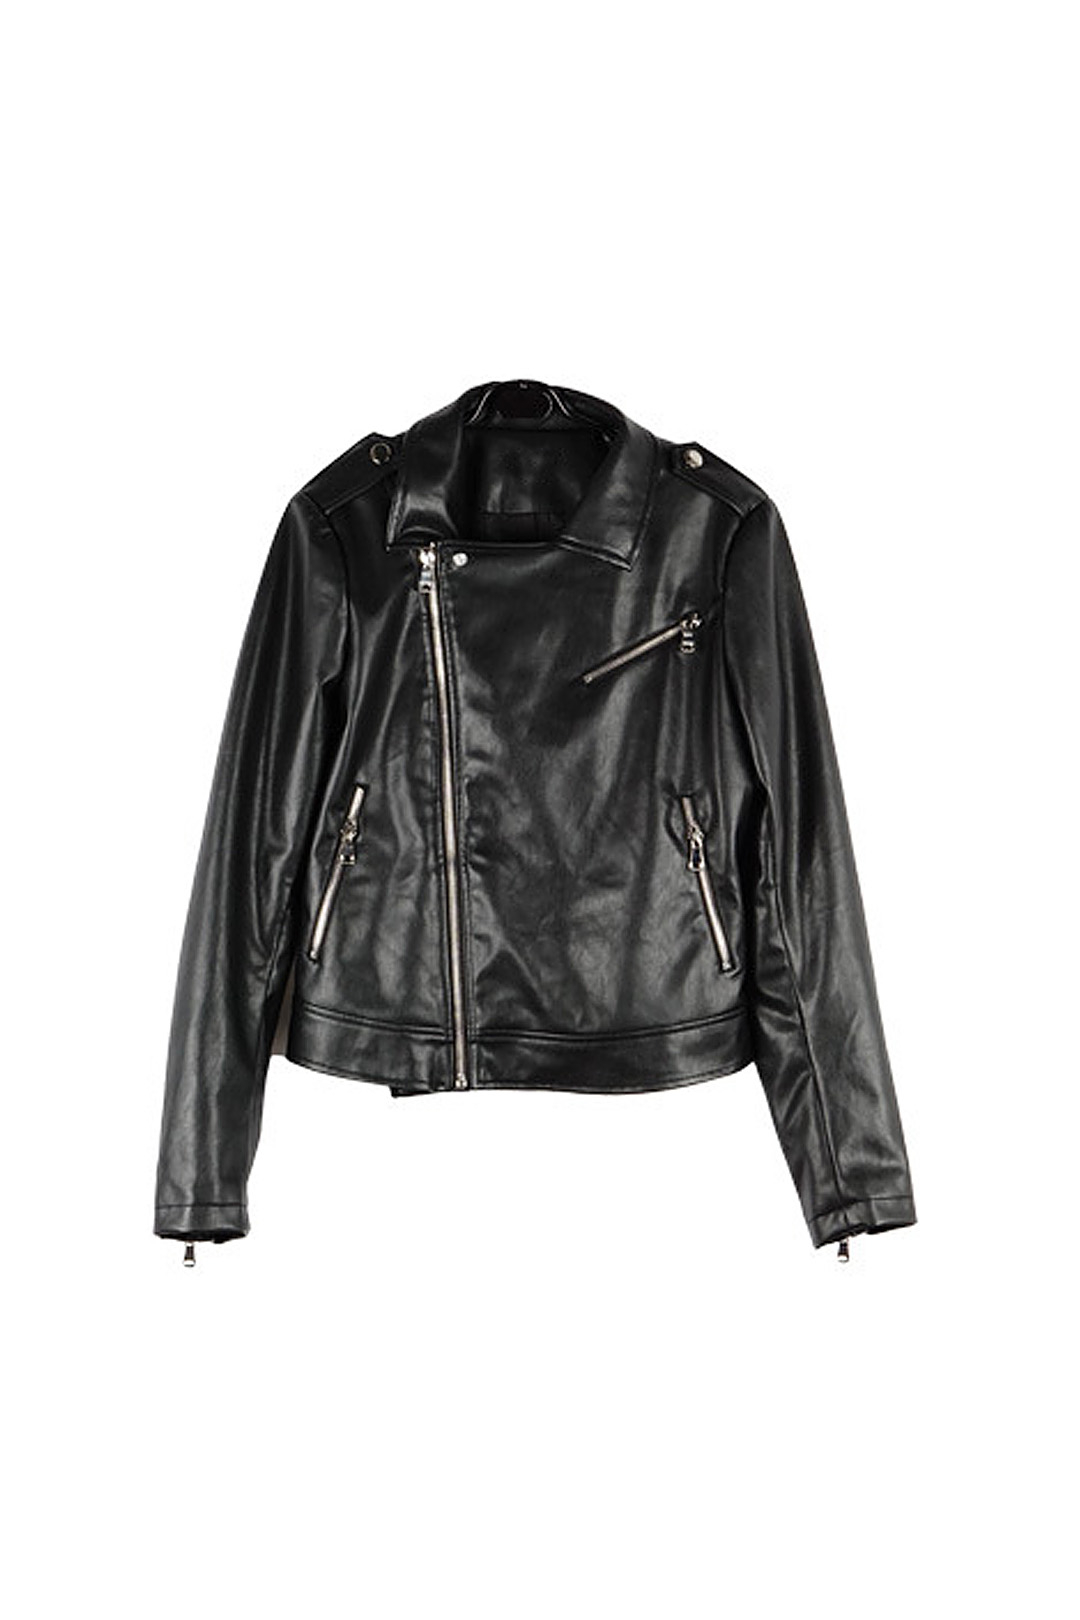 Tassel Leather Jackets with Zipper